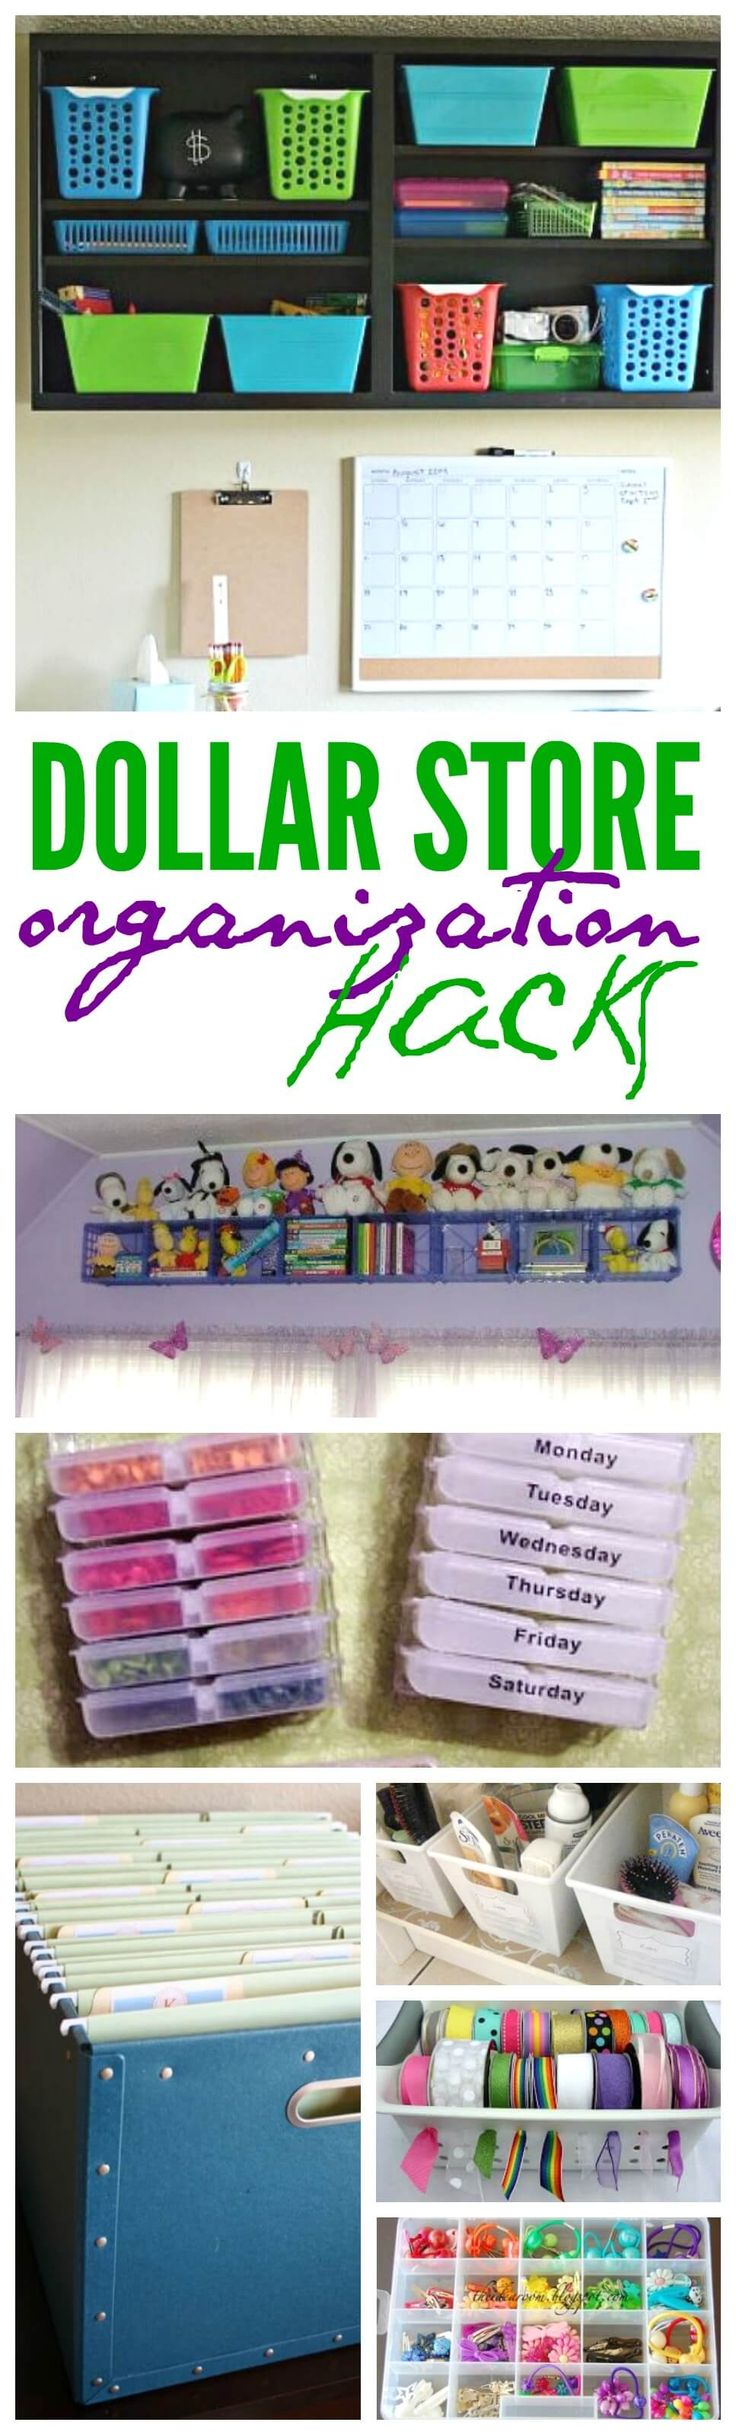 dollar store organization hacks 2